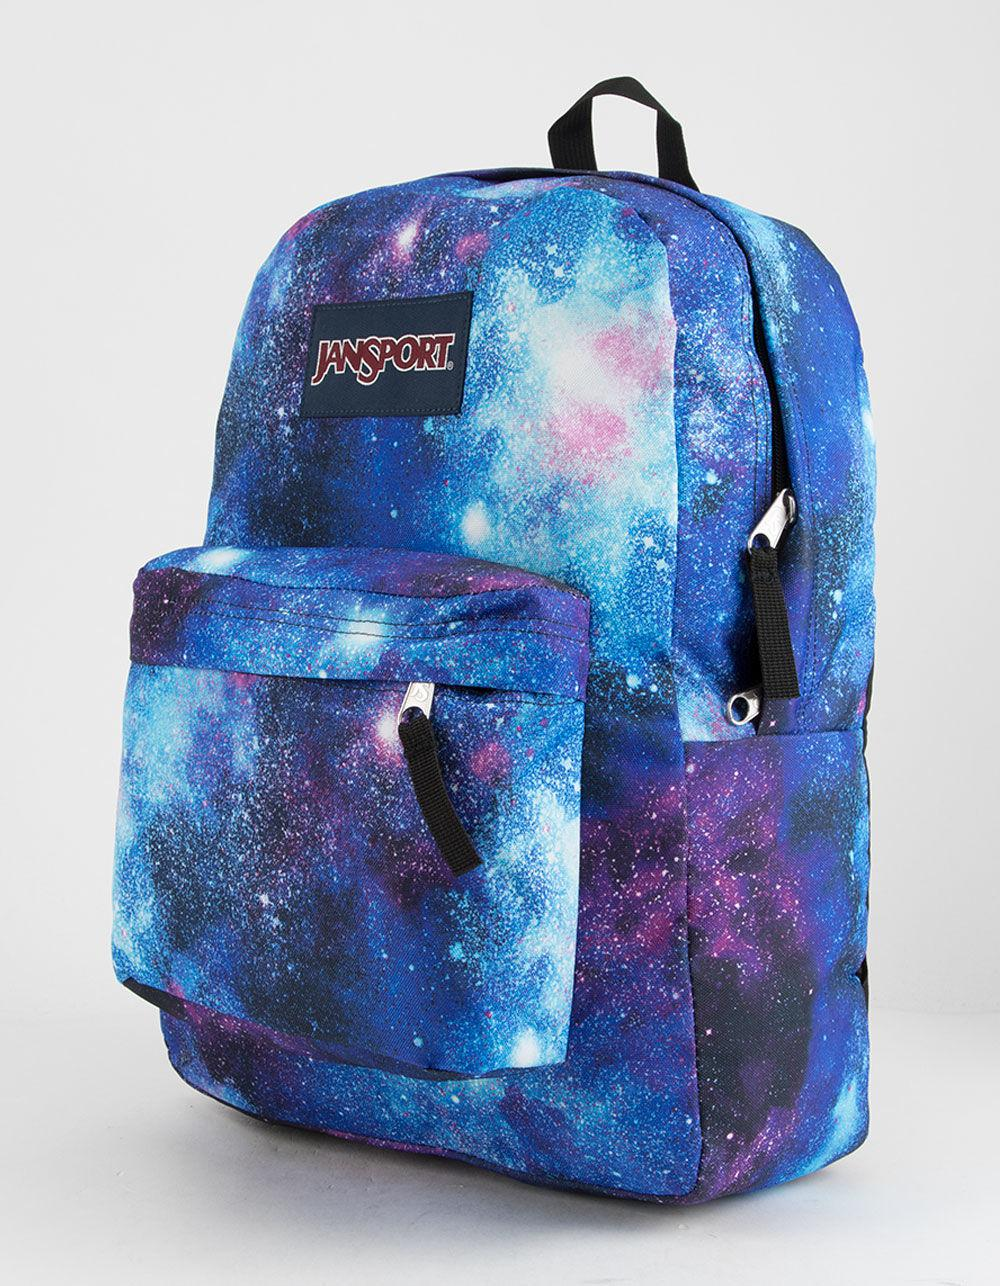 Jansport Backpack Galaxy - Swiss Paralympic